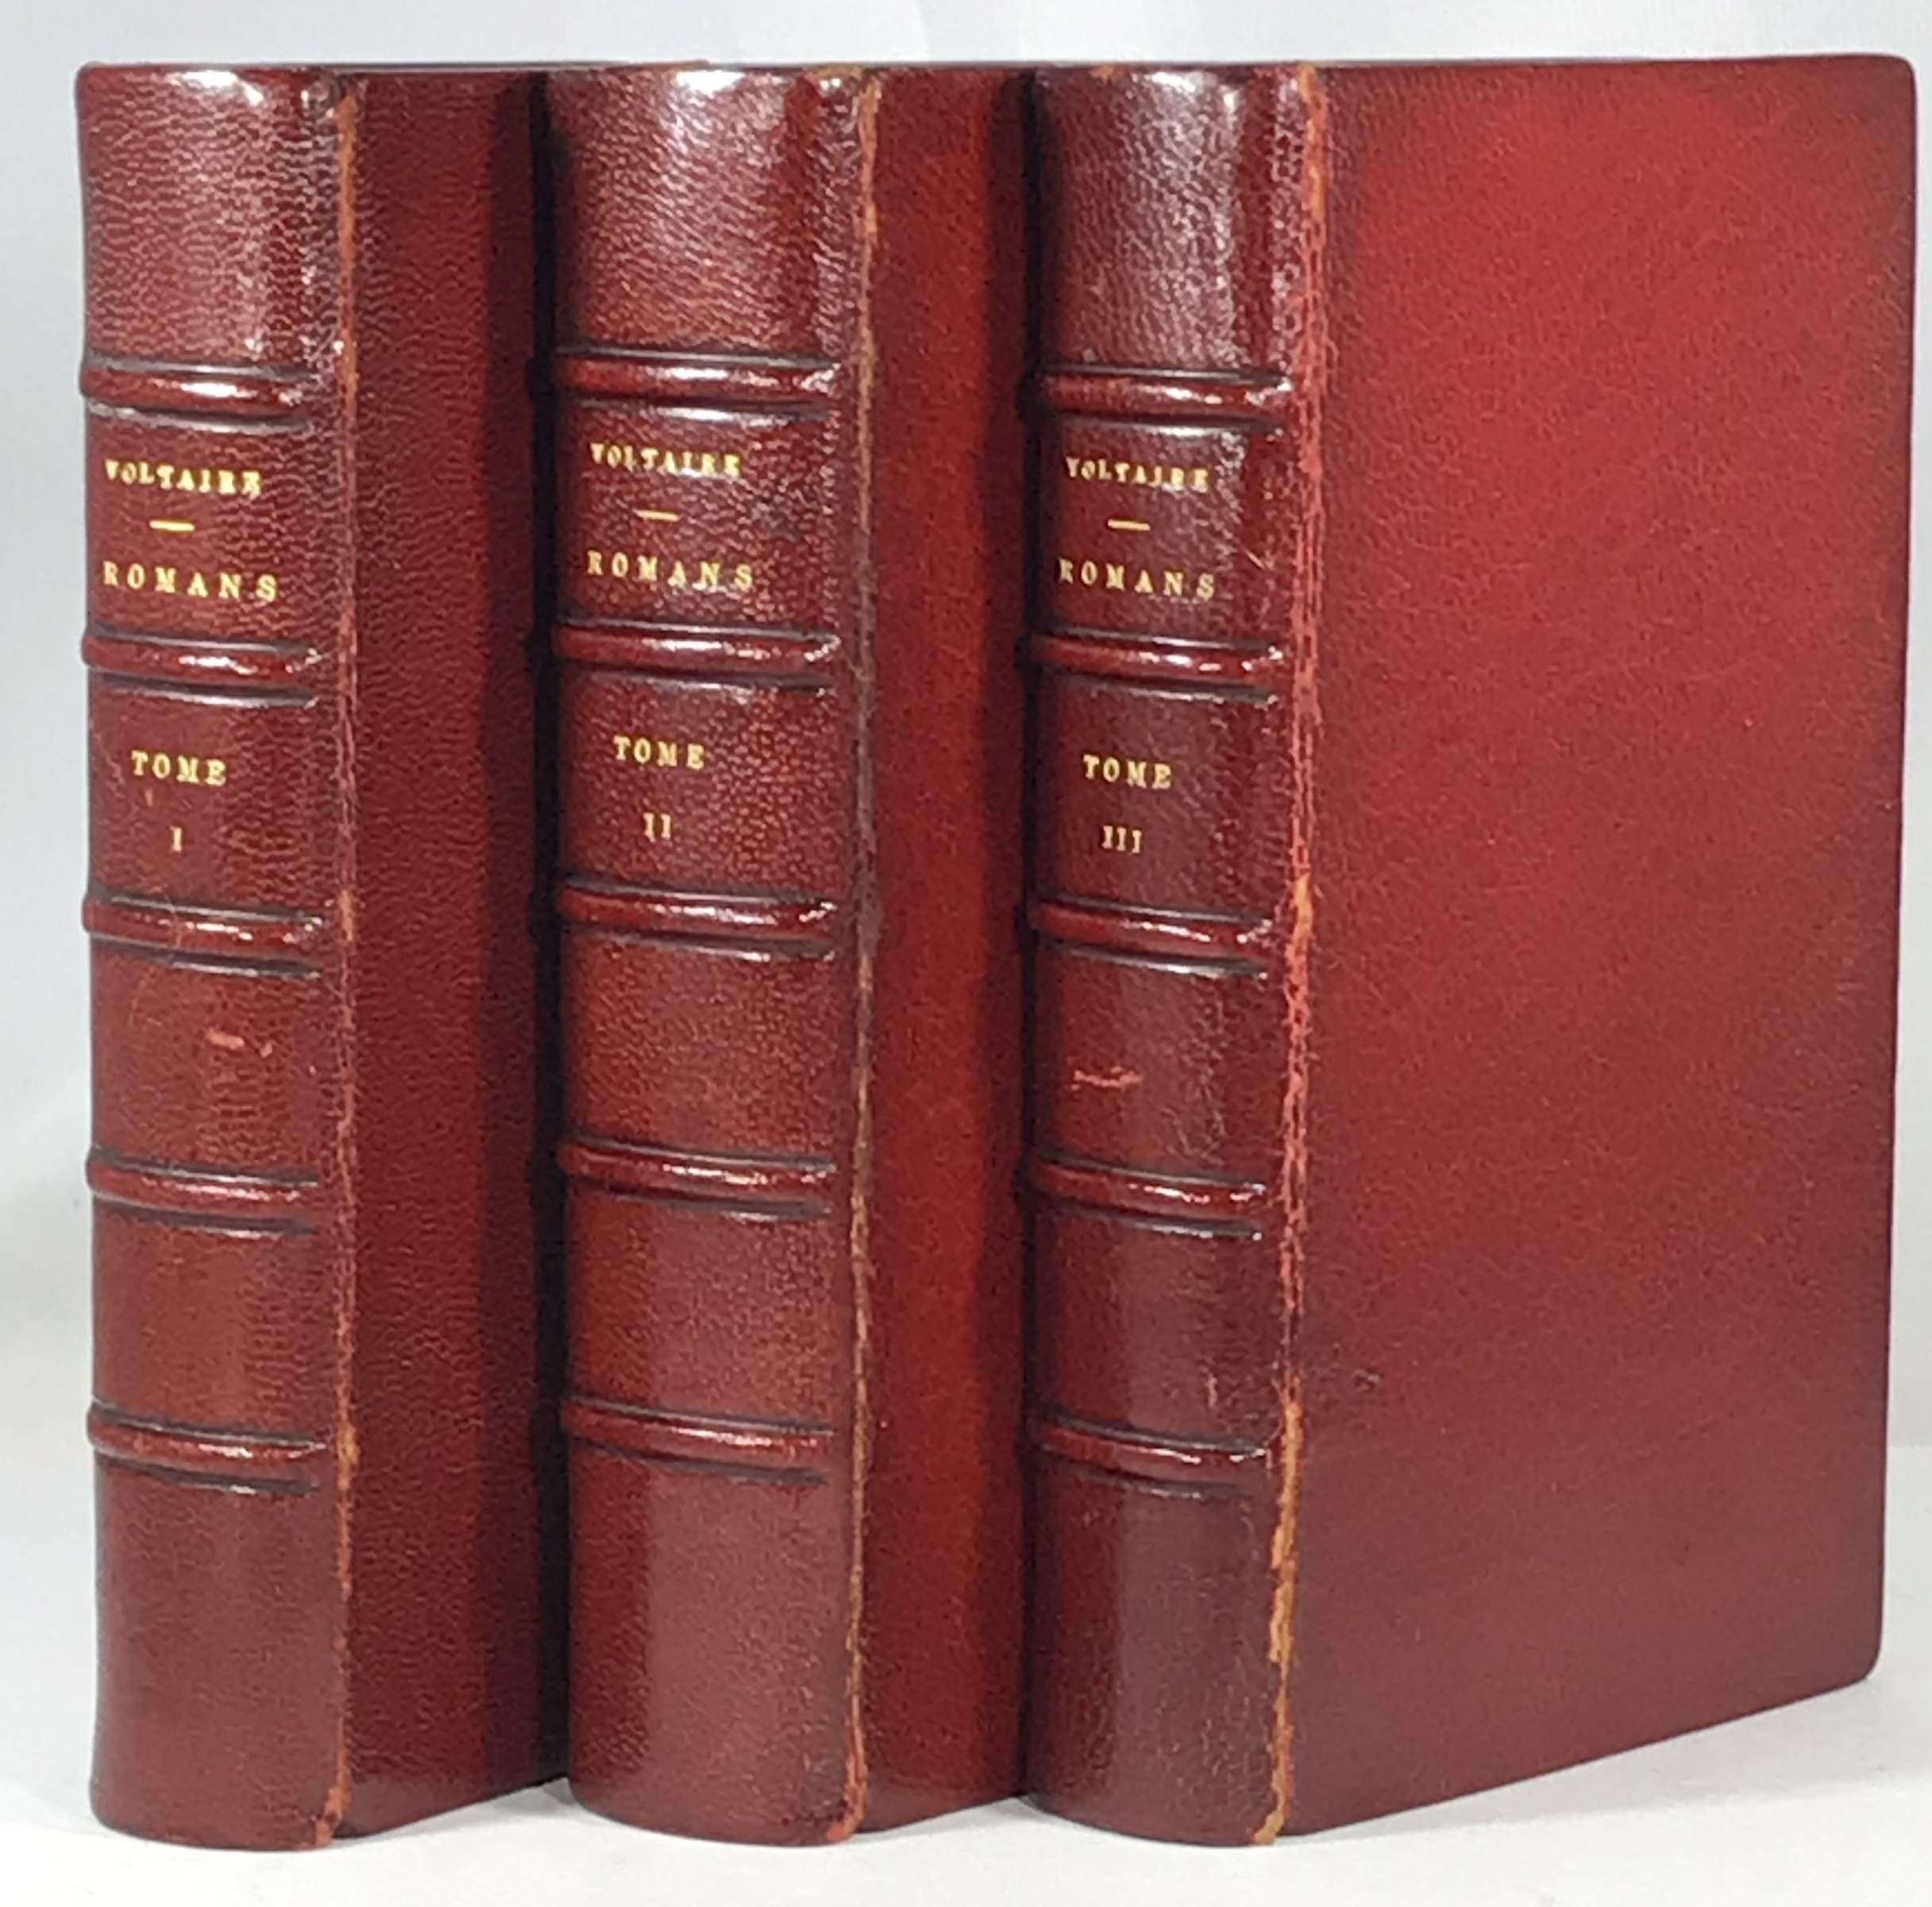 Offered by Brenner Collectable Books